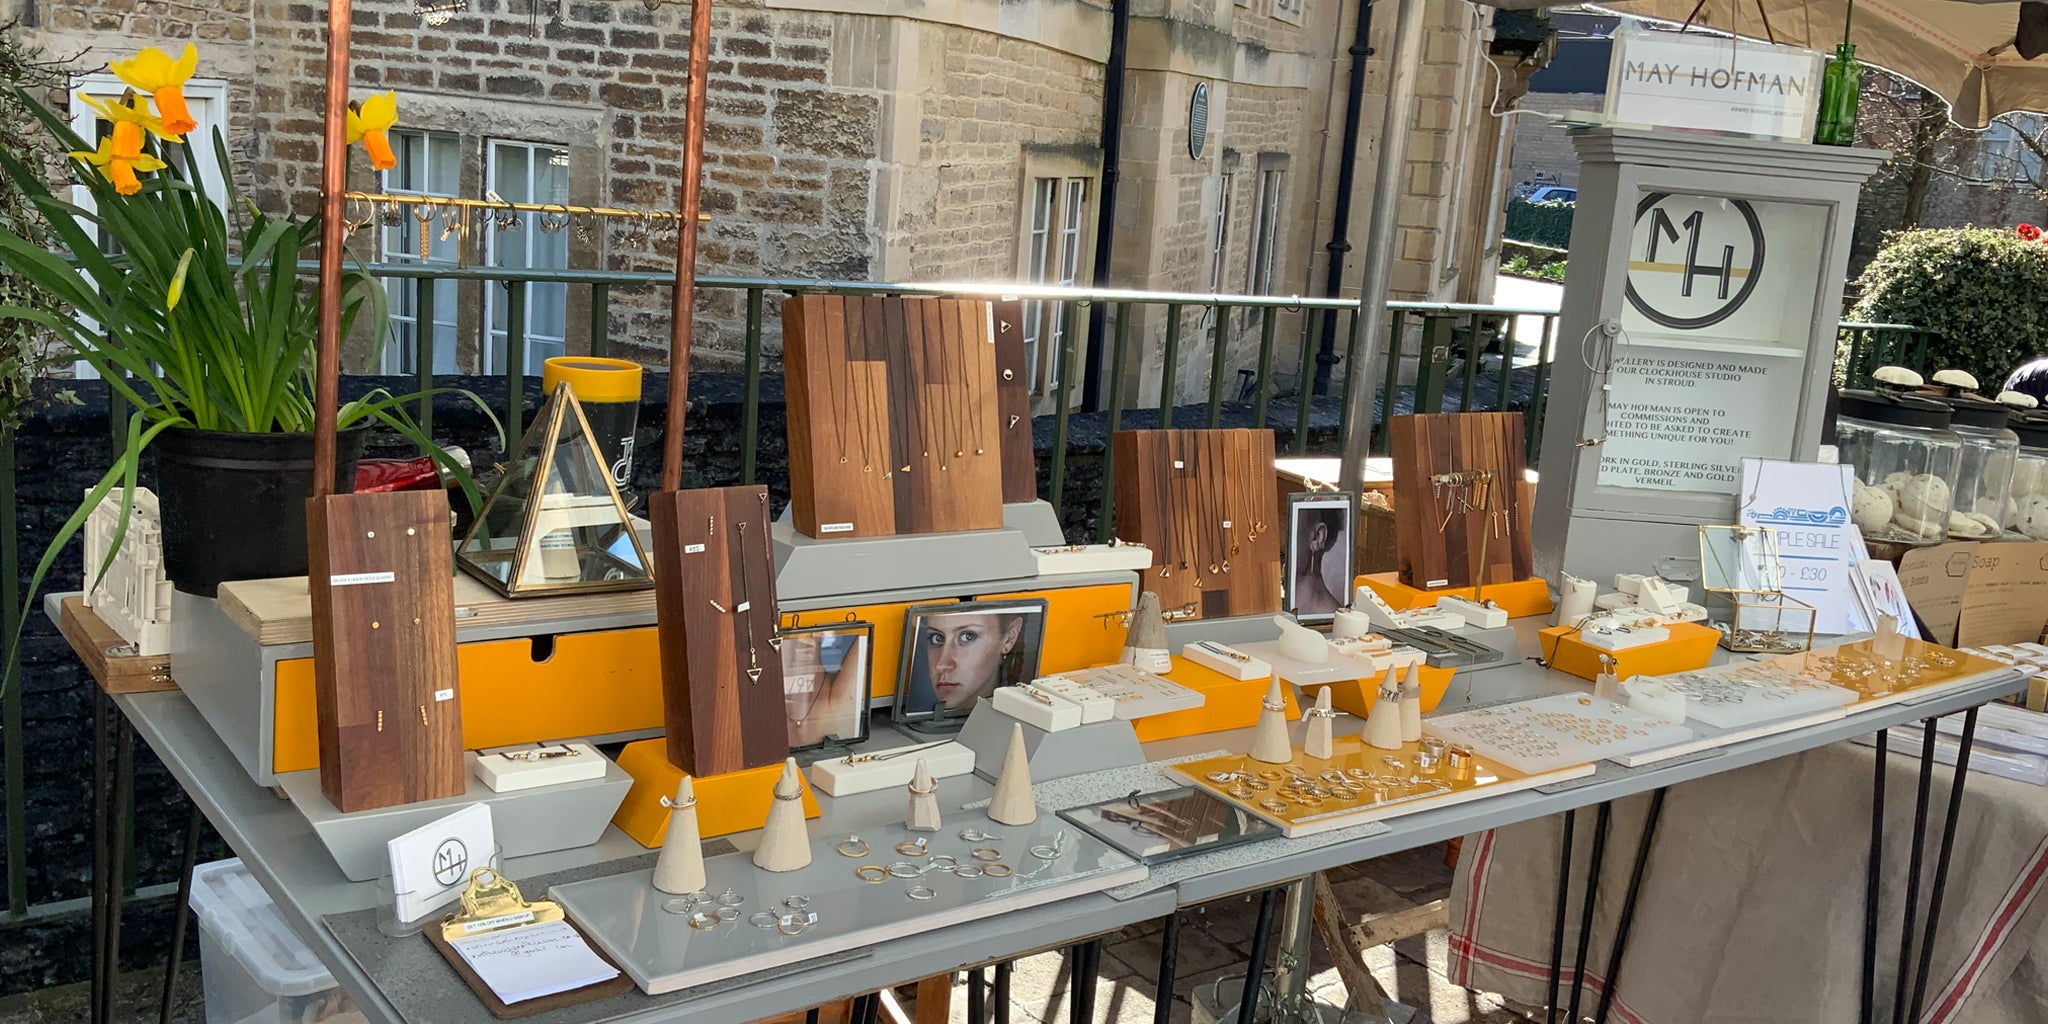 May Hofman jewellery design at frome market